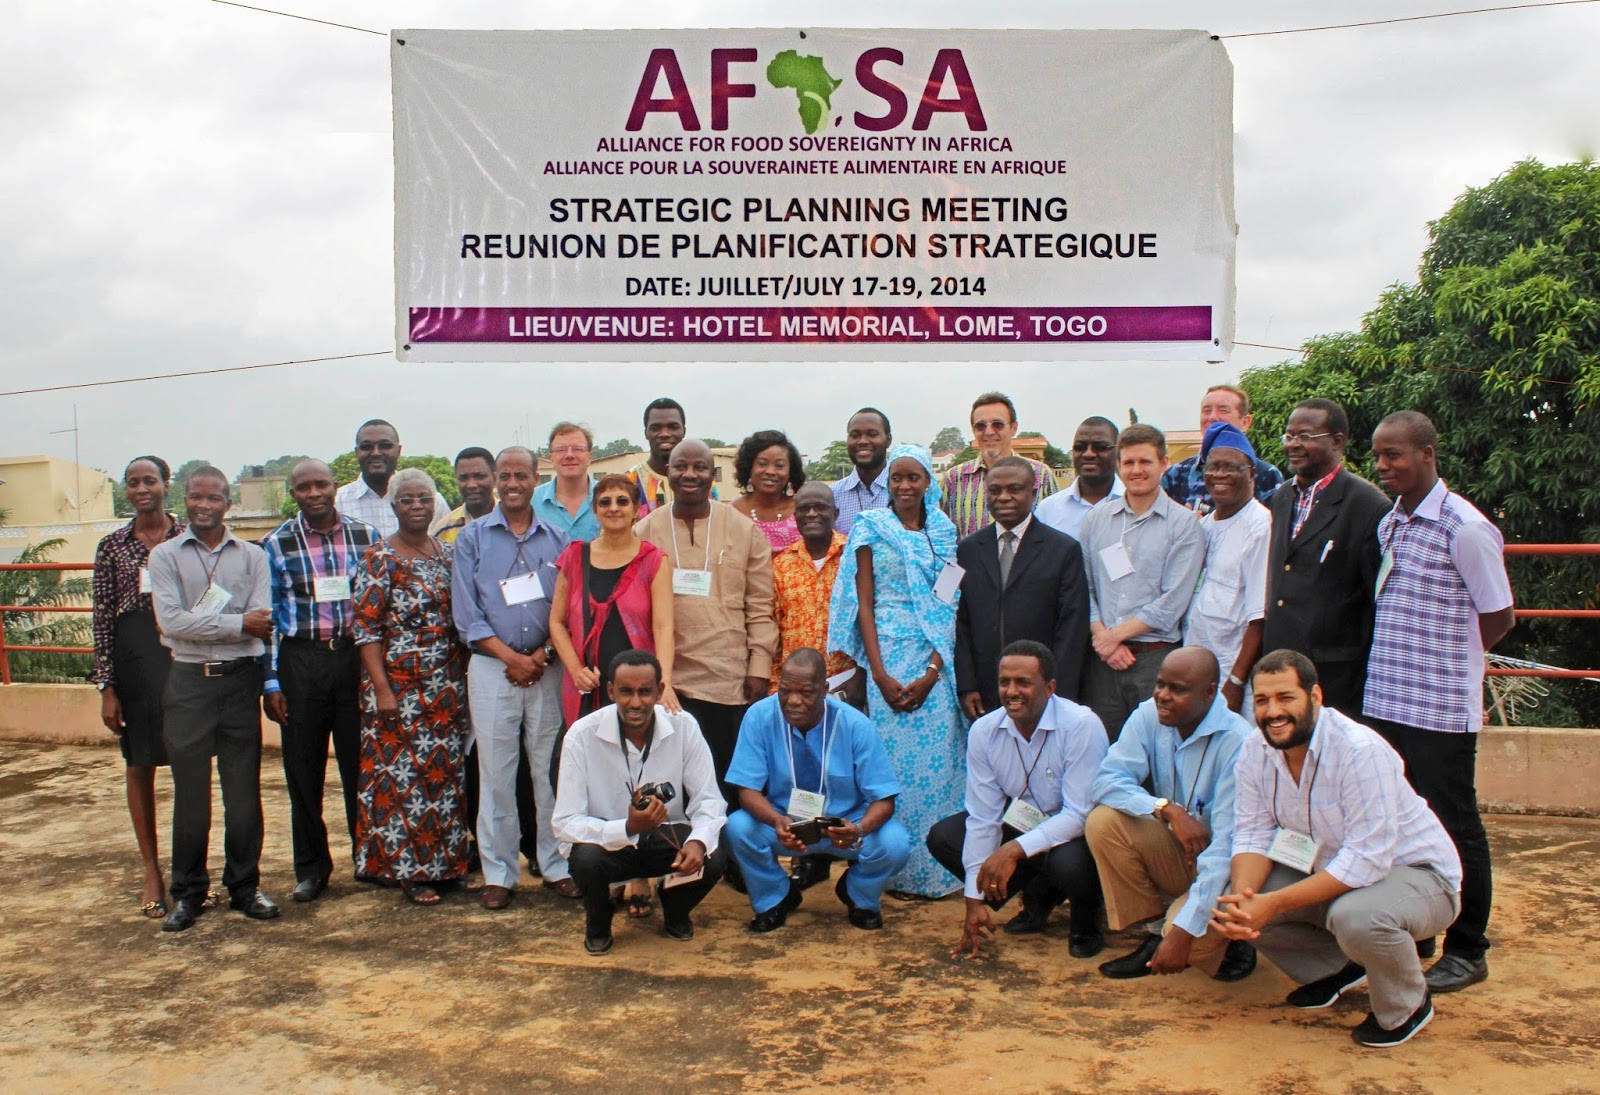 AFSA-meeting-Family-Picture